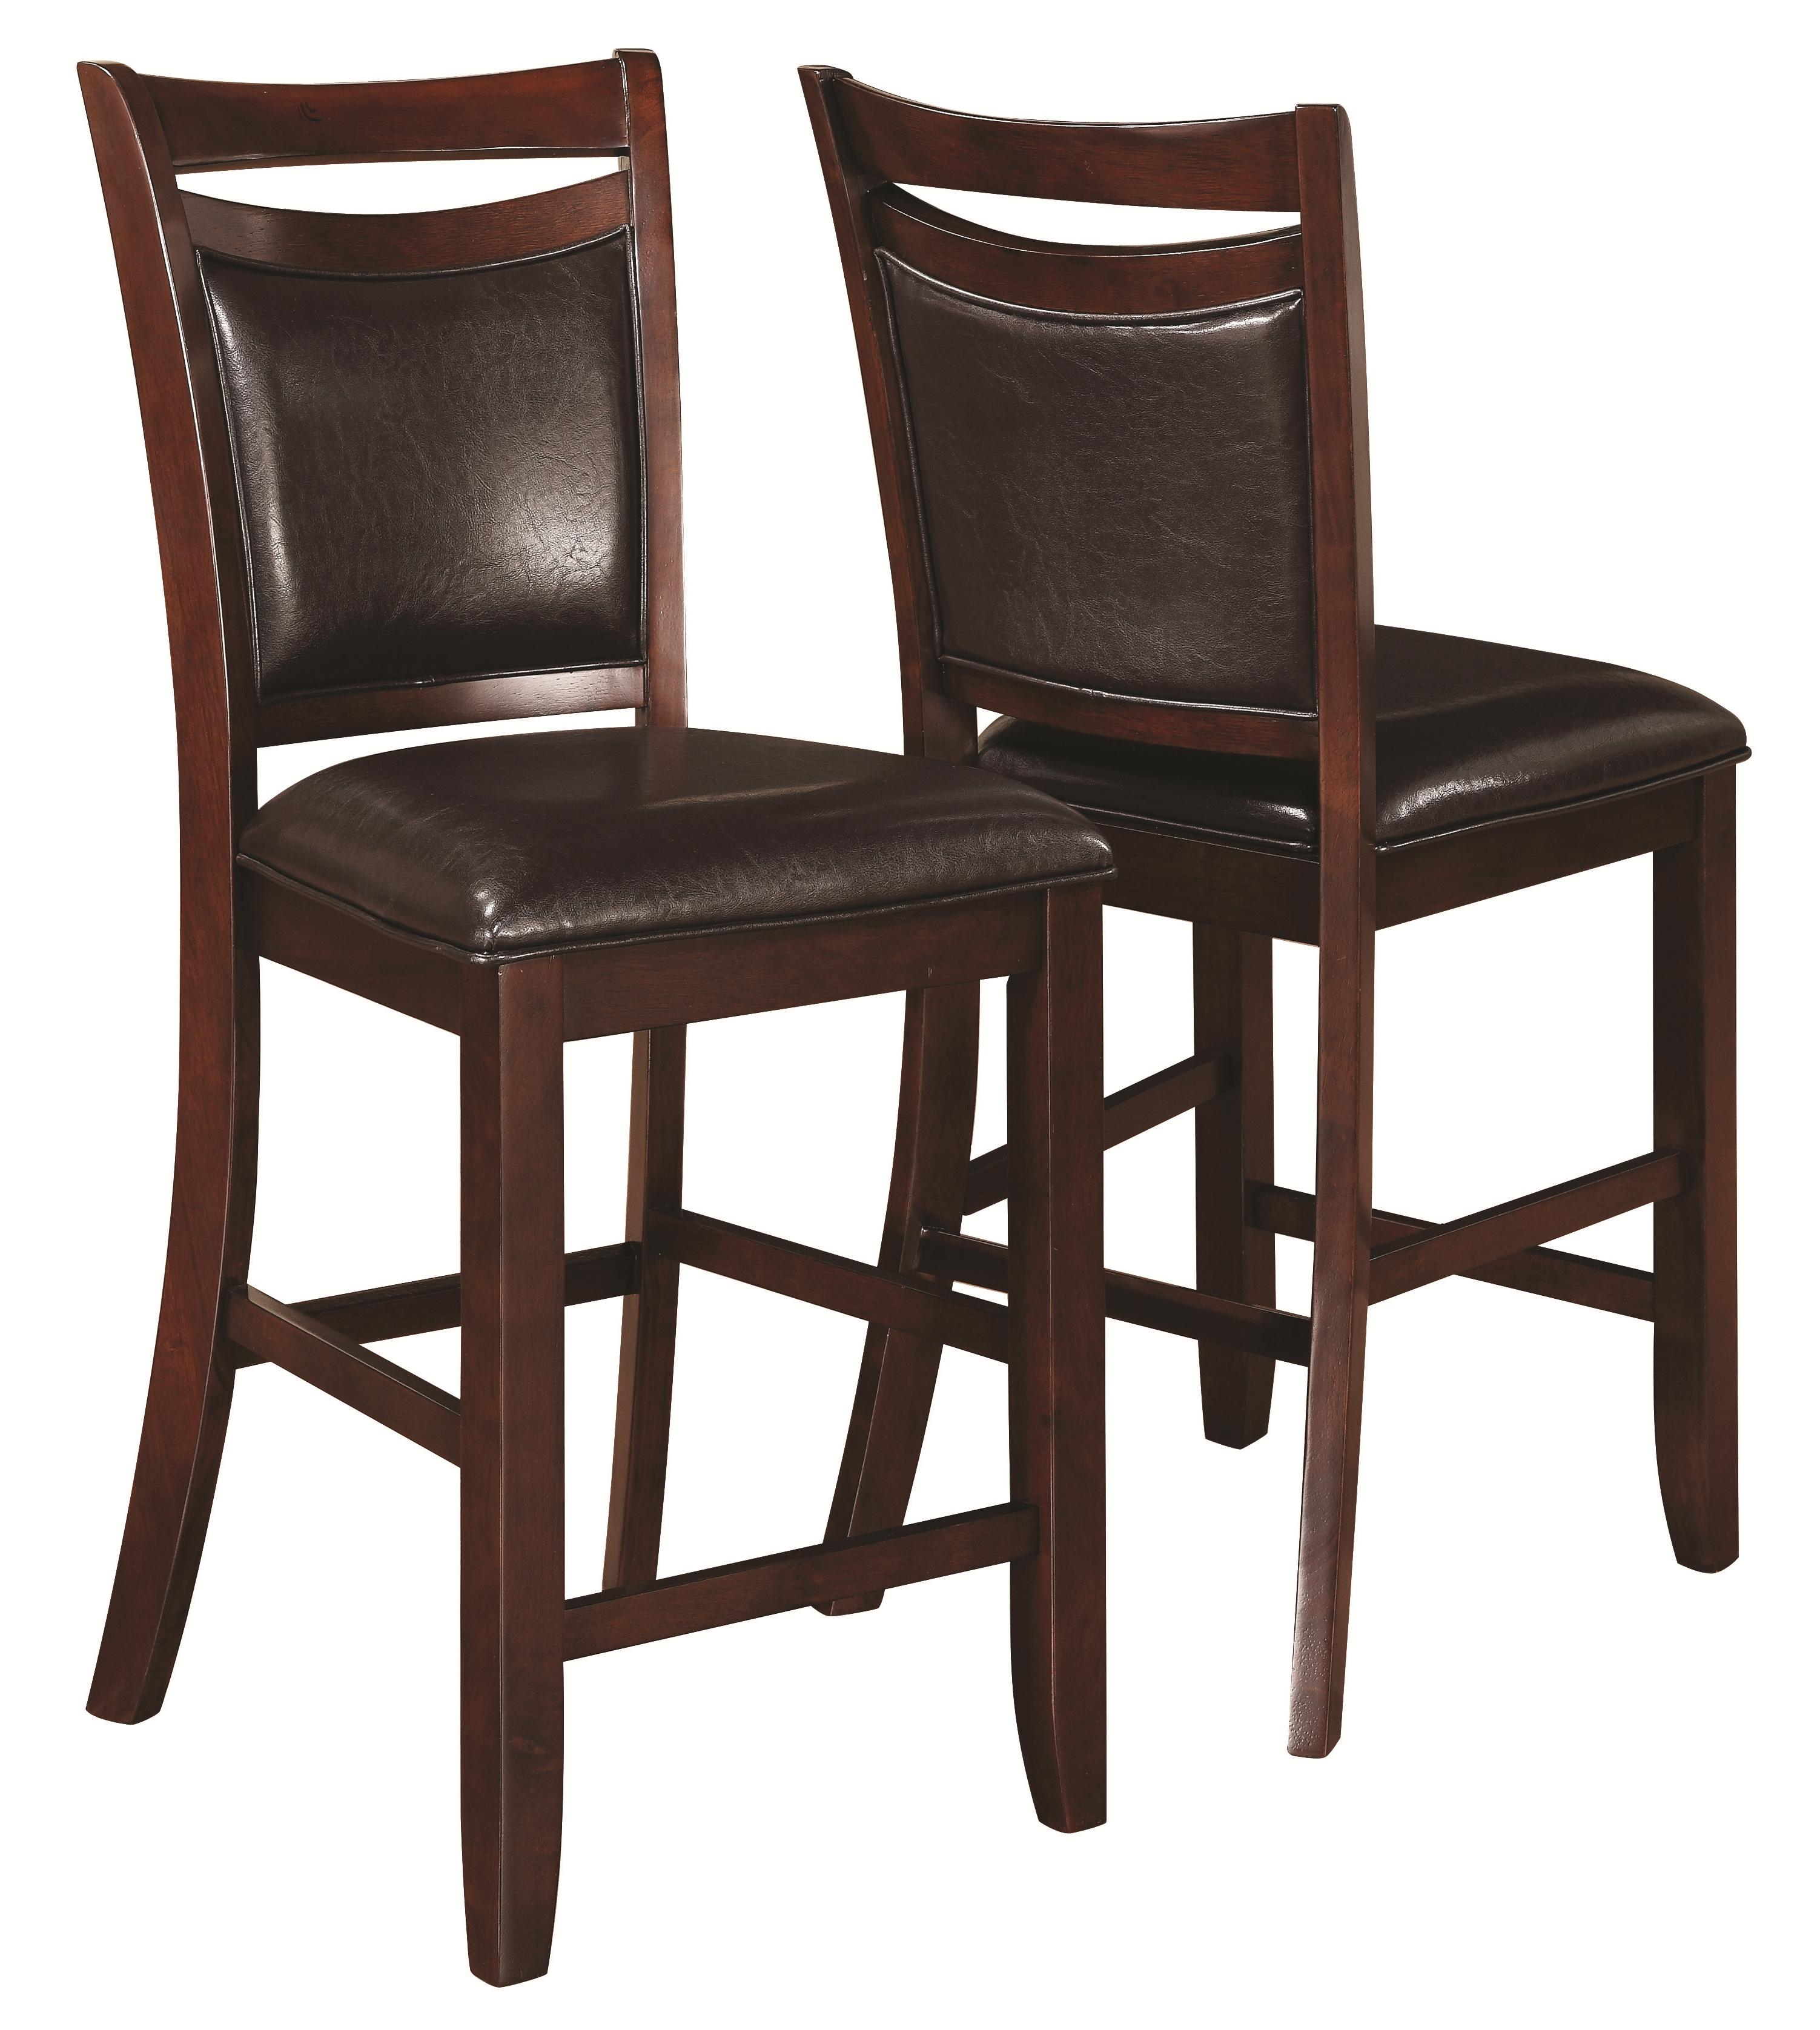 Coaster Dupree Counter Height Stool - Item Number: 105479